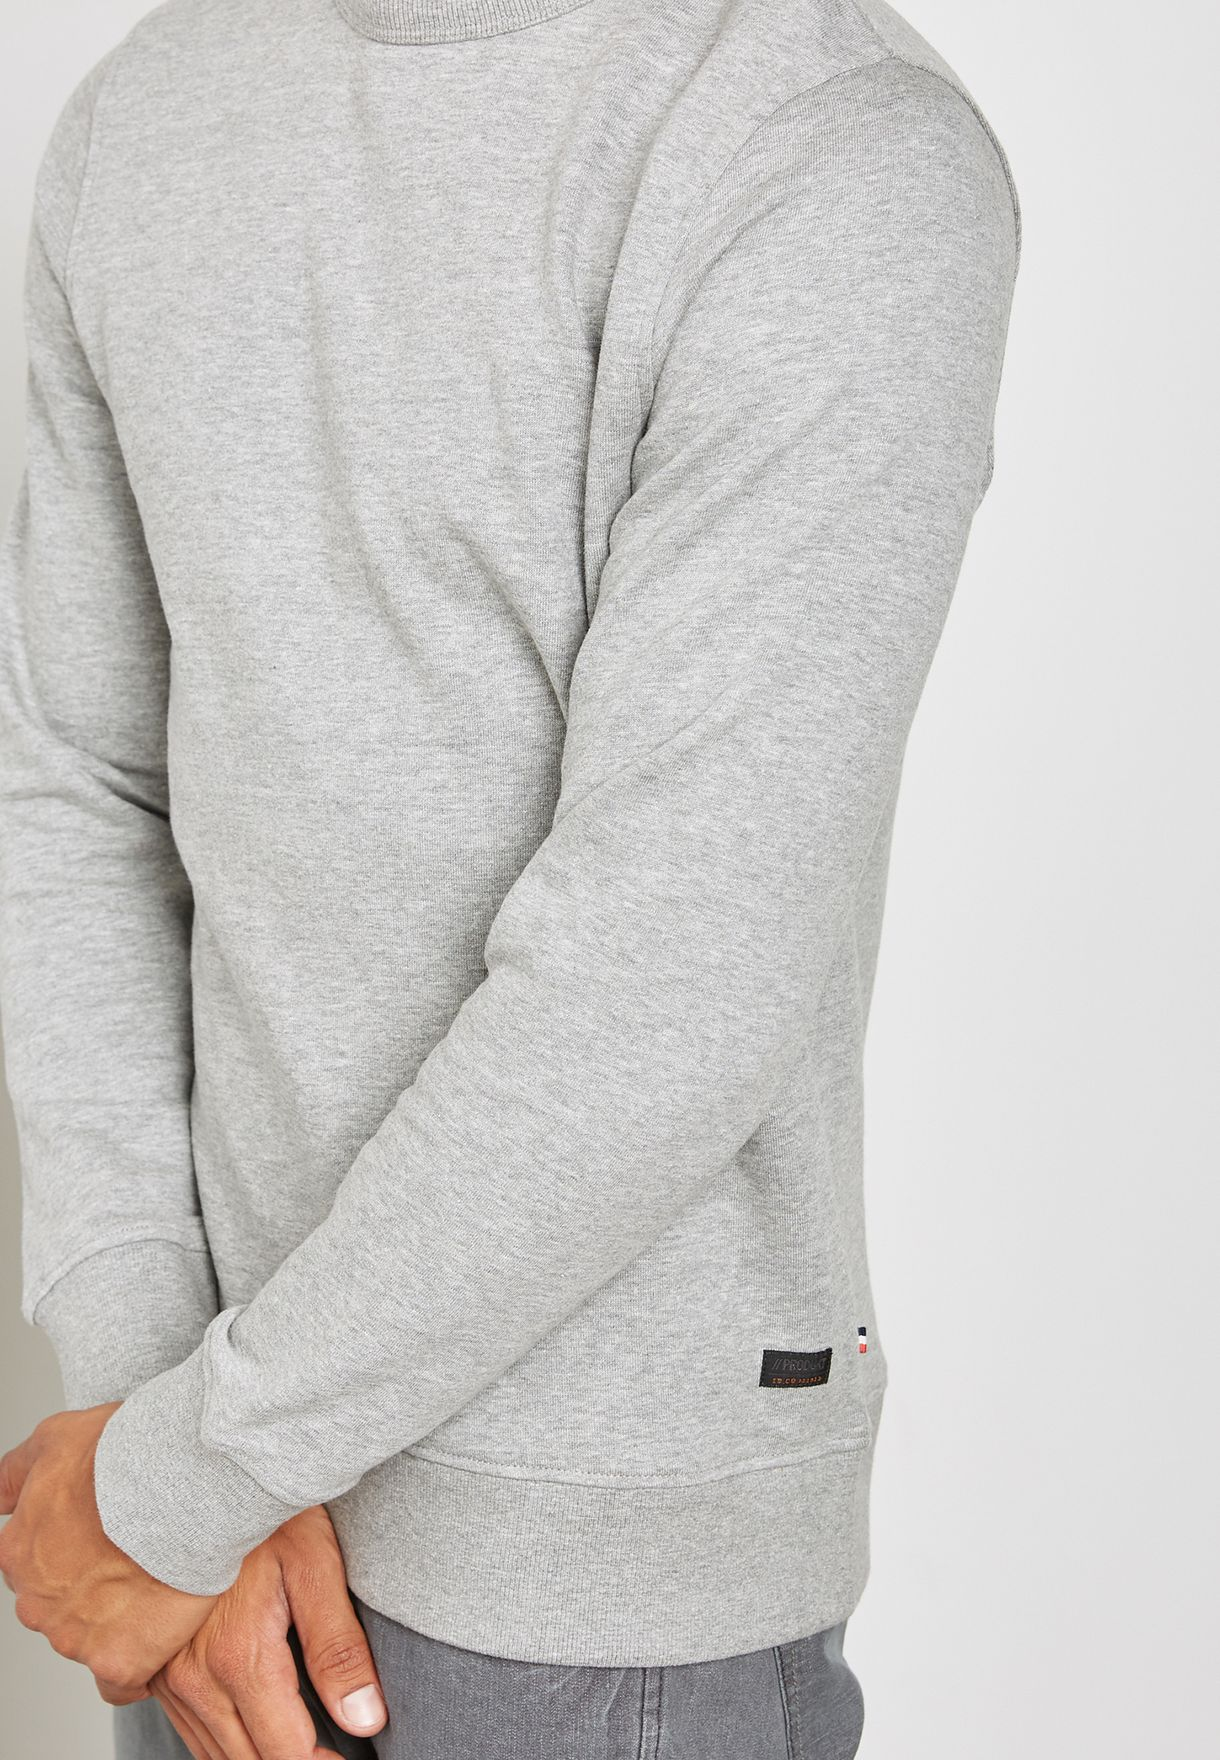 Viy Essential Sweatshirt